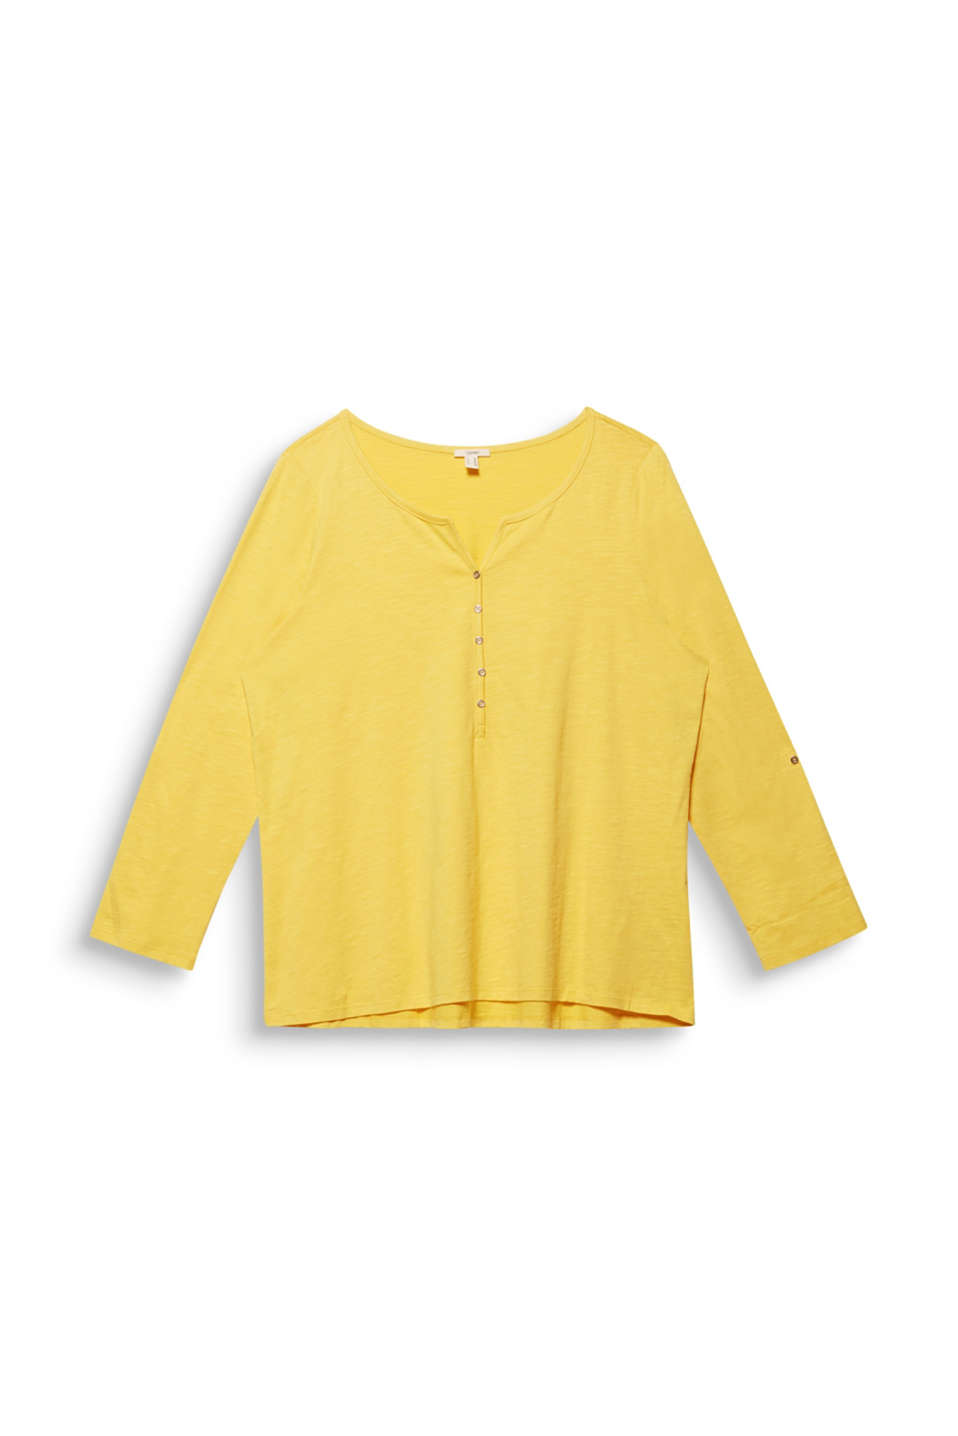 CURVY long sleeve top, organic cotton, YELLOW 3, detail image number 7